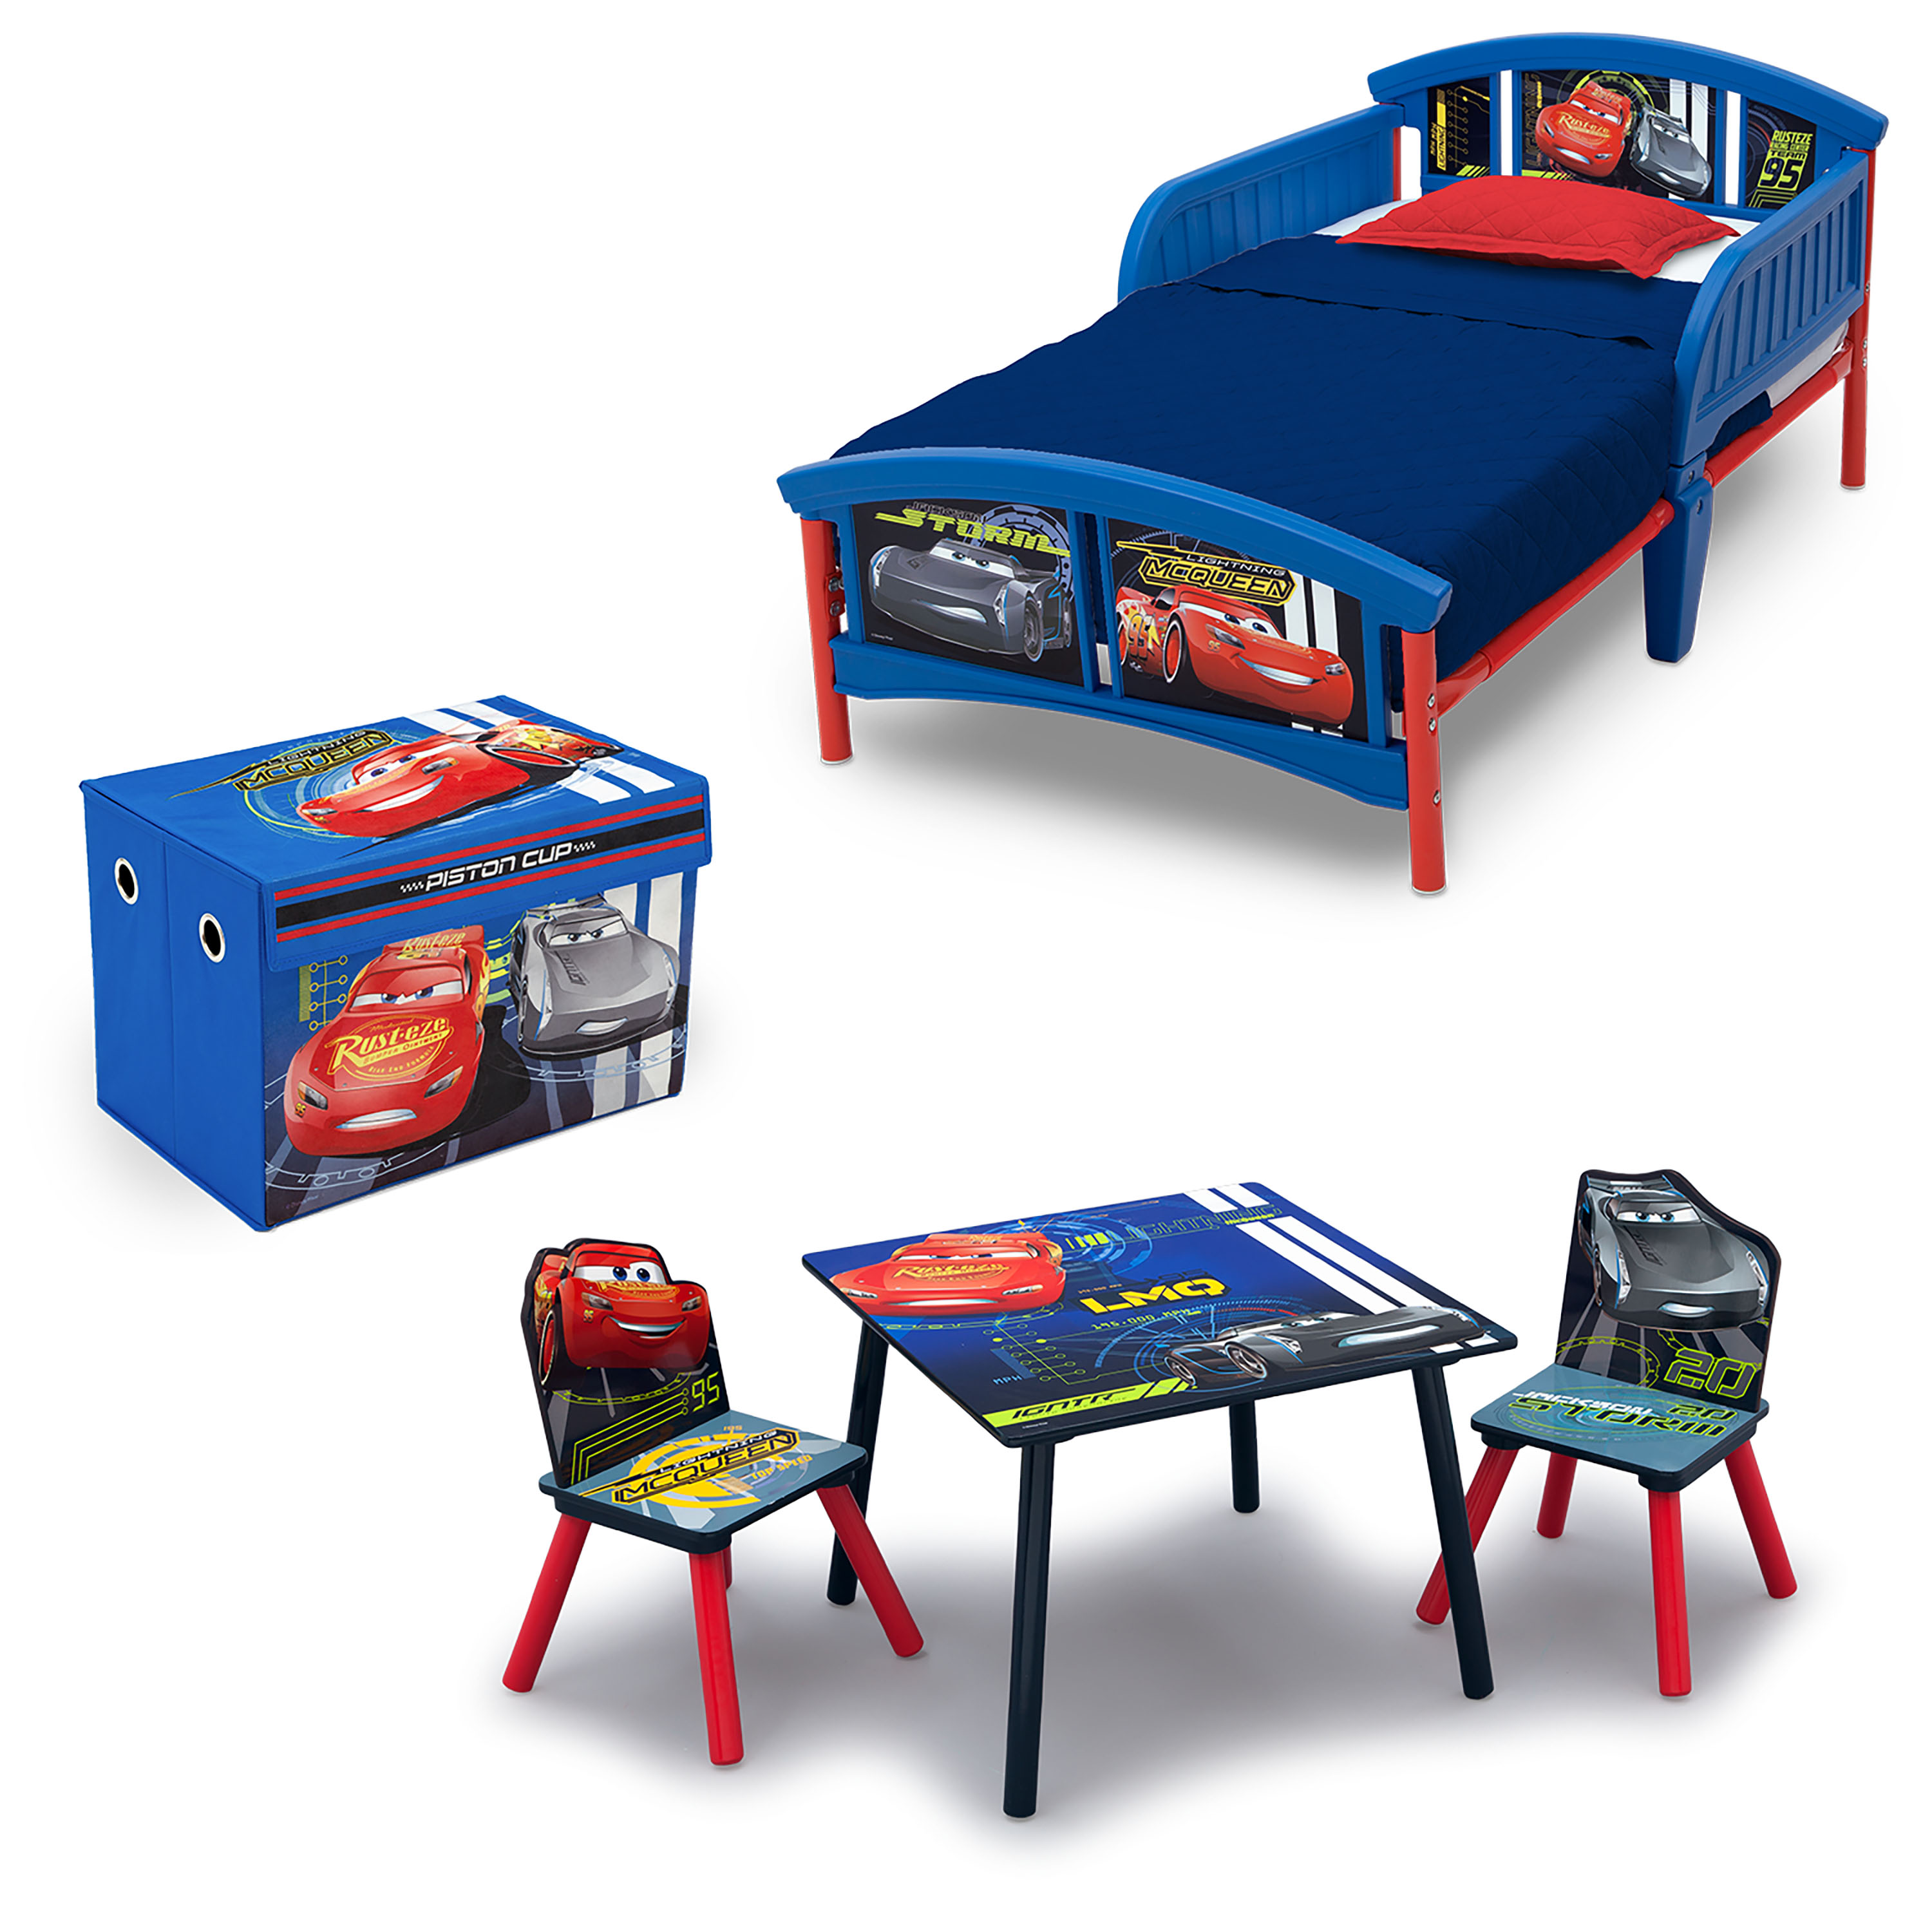 Disney Cars Chair And Desk Combo With Storage Bin Disney